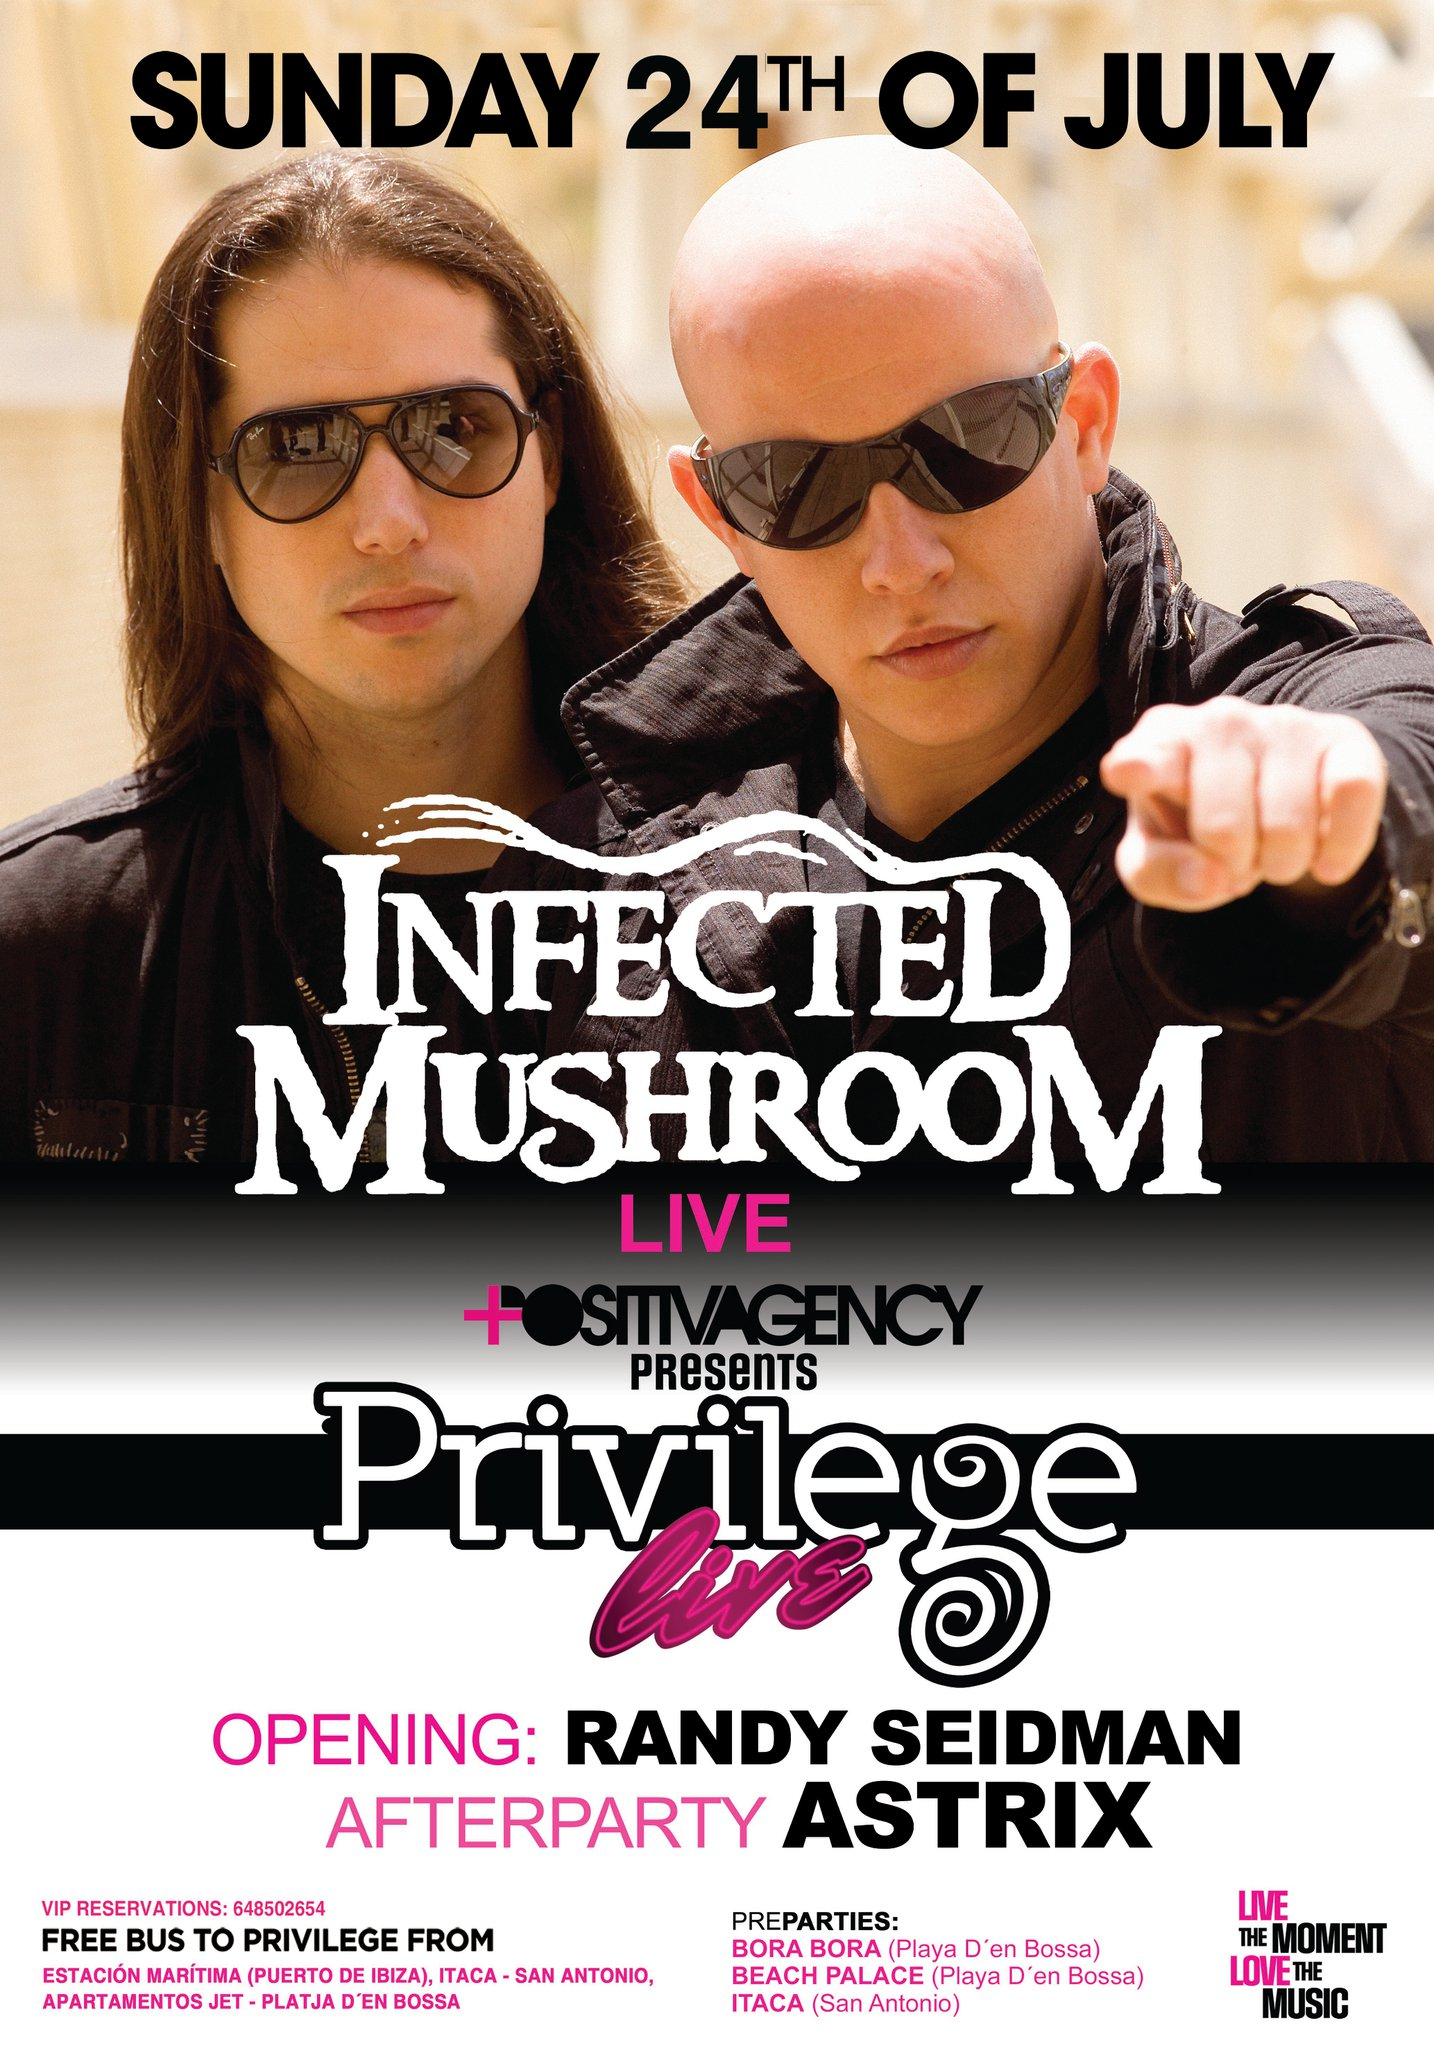 Privilege Live! Infected Mushroom